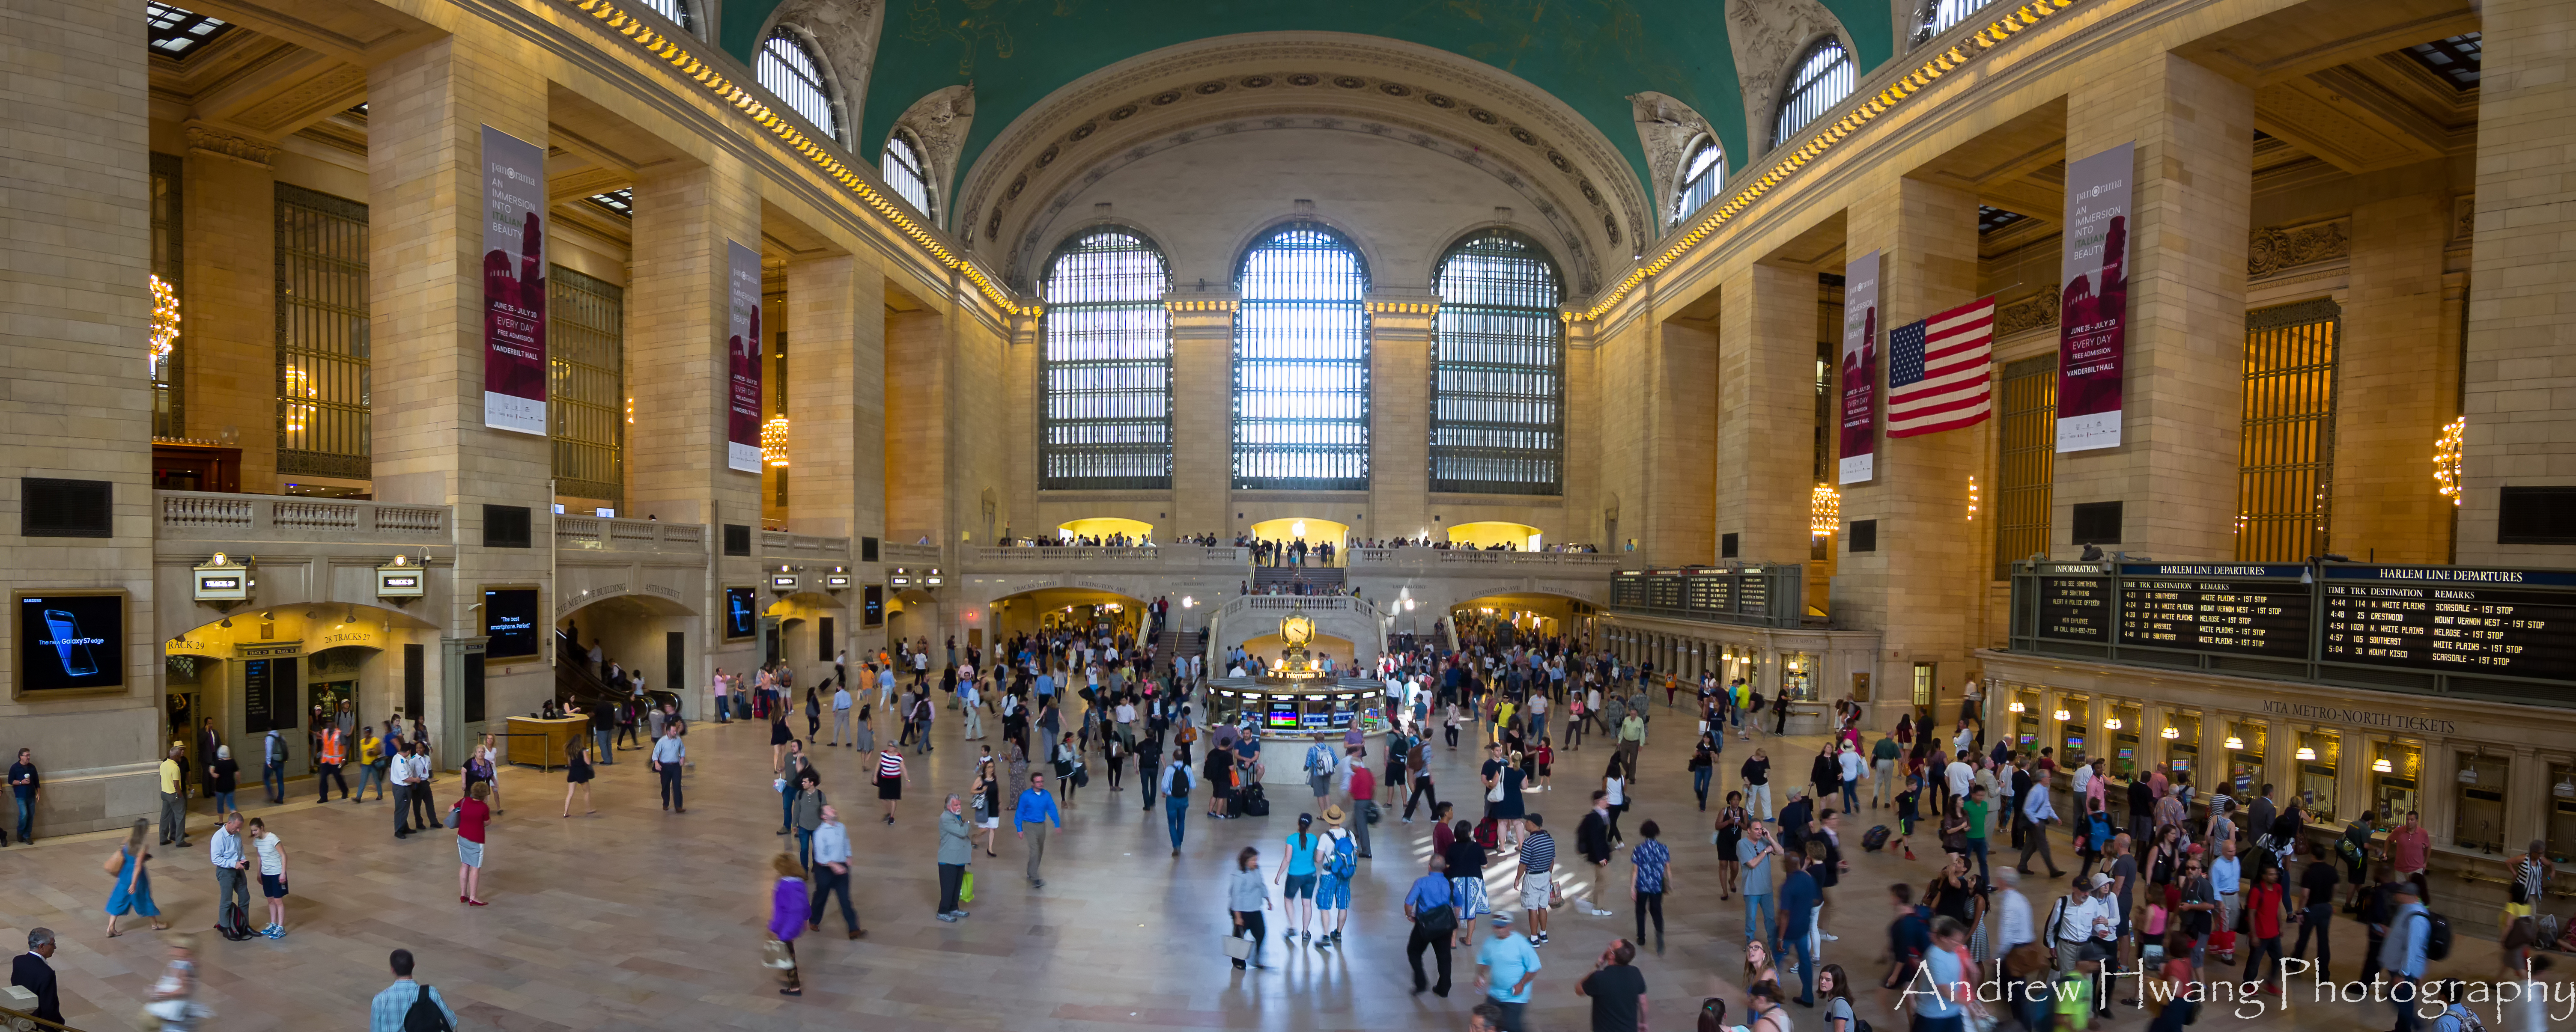 Grand Central Station Pano